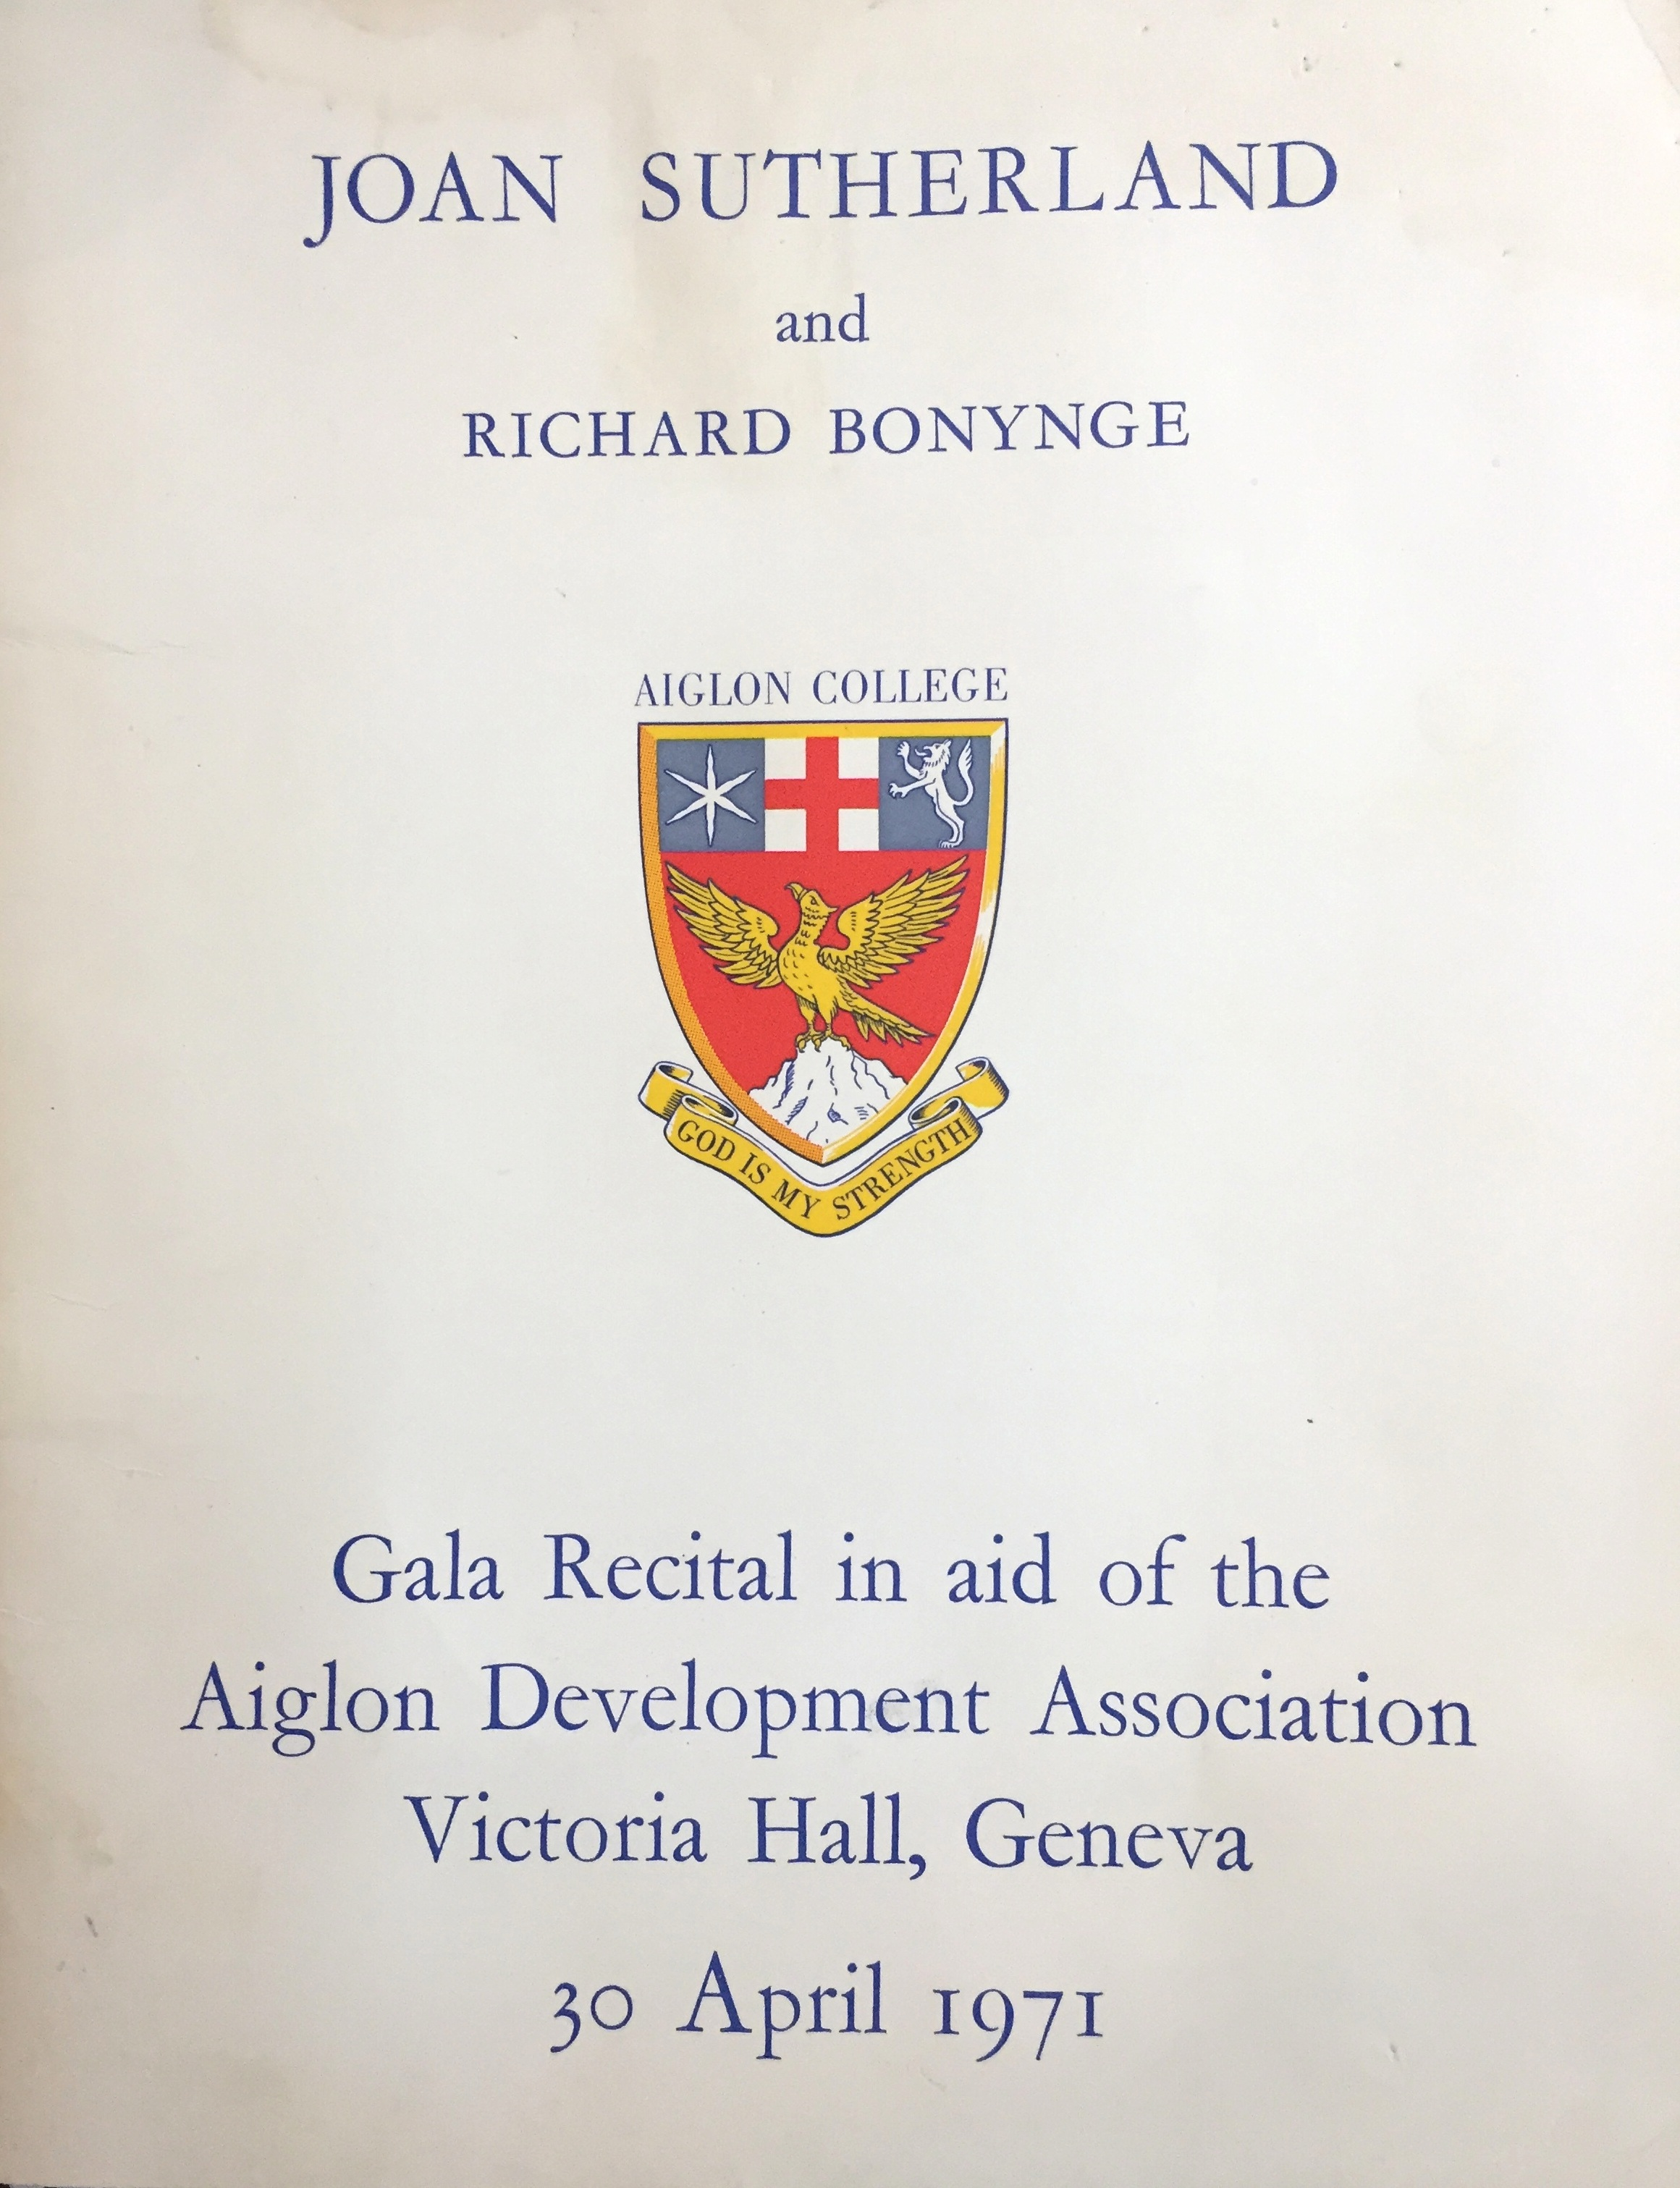 The 1971 Sutherland-Bonynge Geneva Gala Rccital program cover.